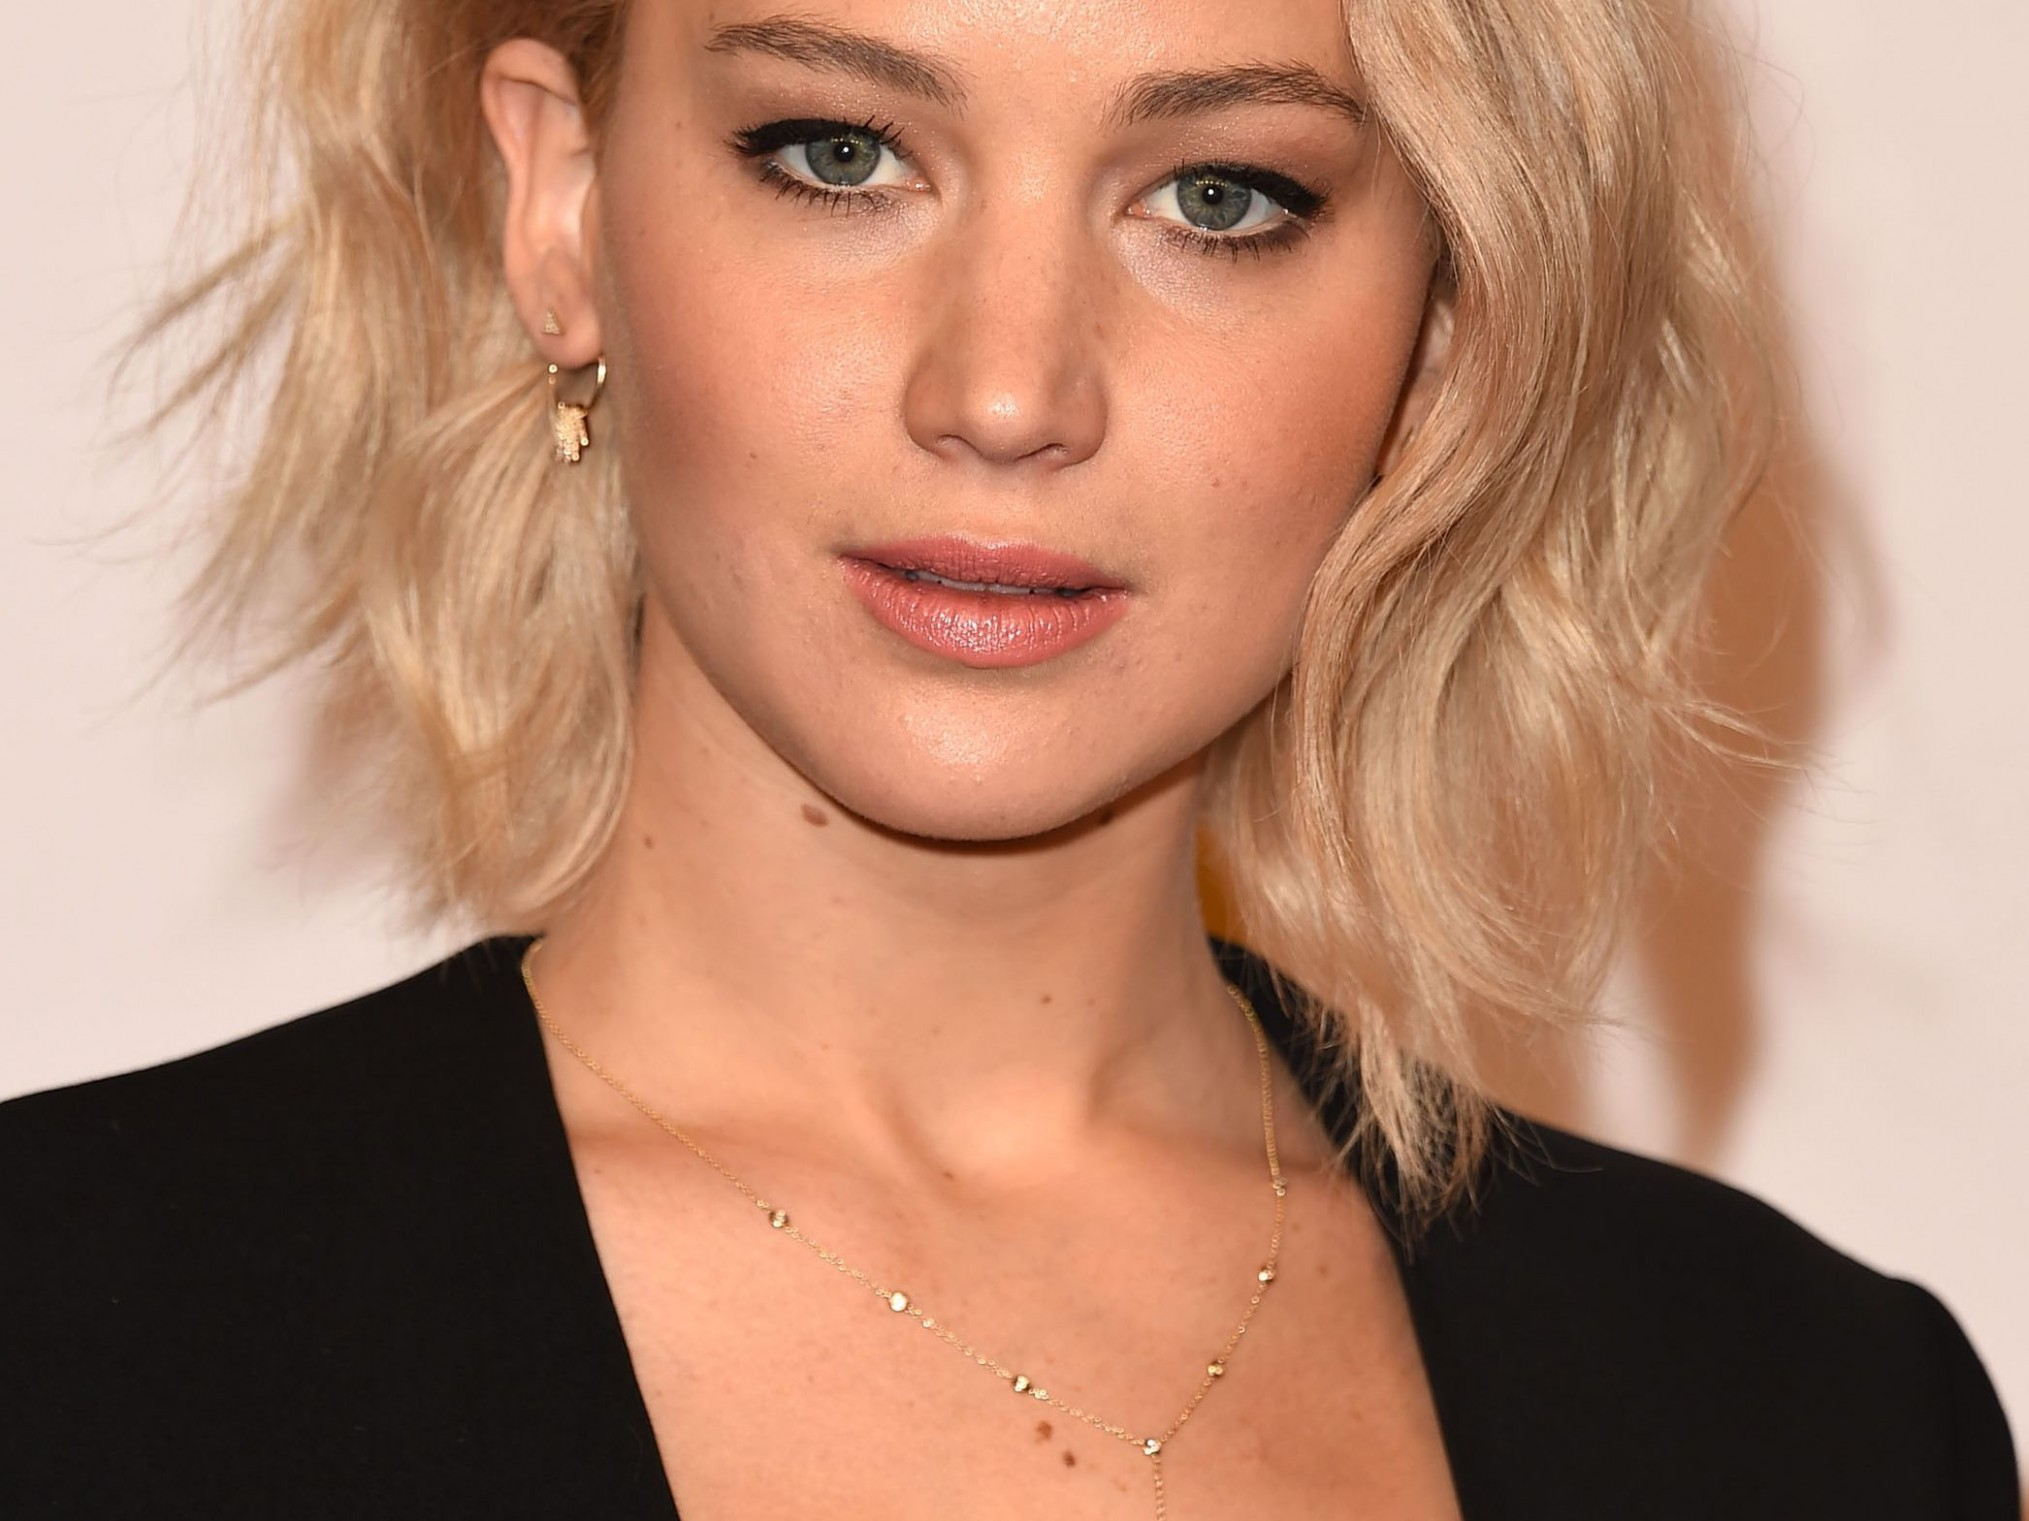 12 Flattering Short Hairstyles For Round Face Shapes Cute Short Hairstyles For Round Faces